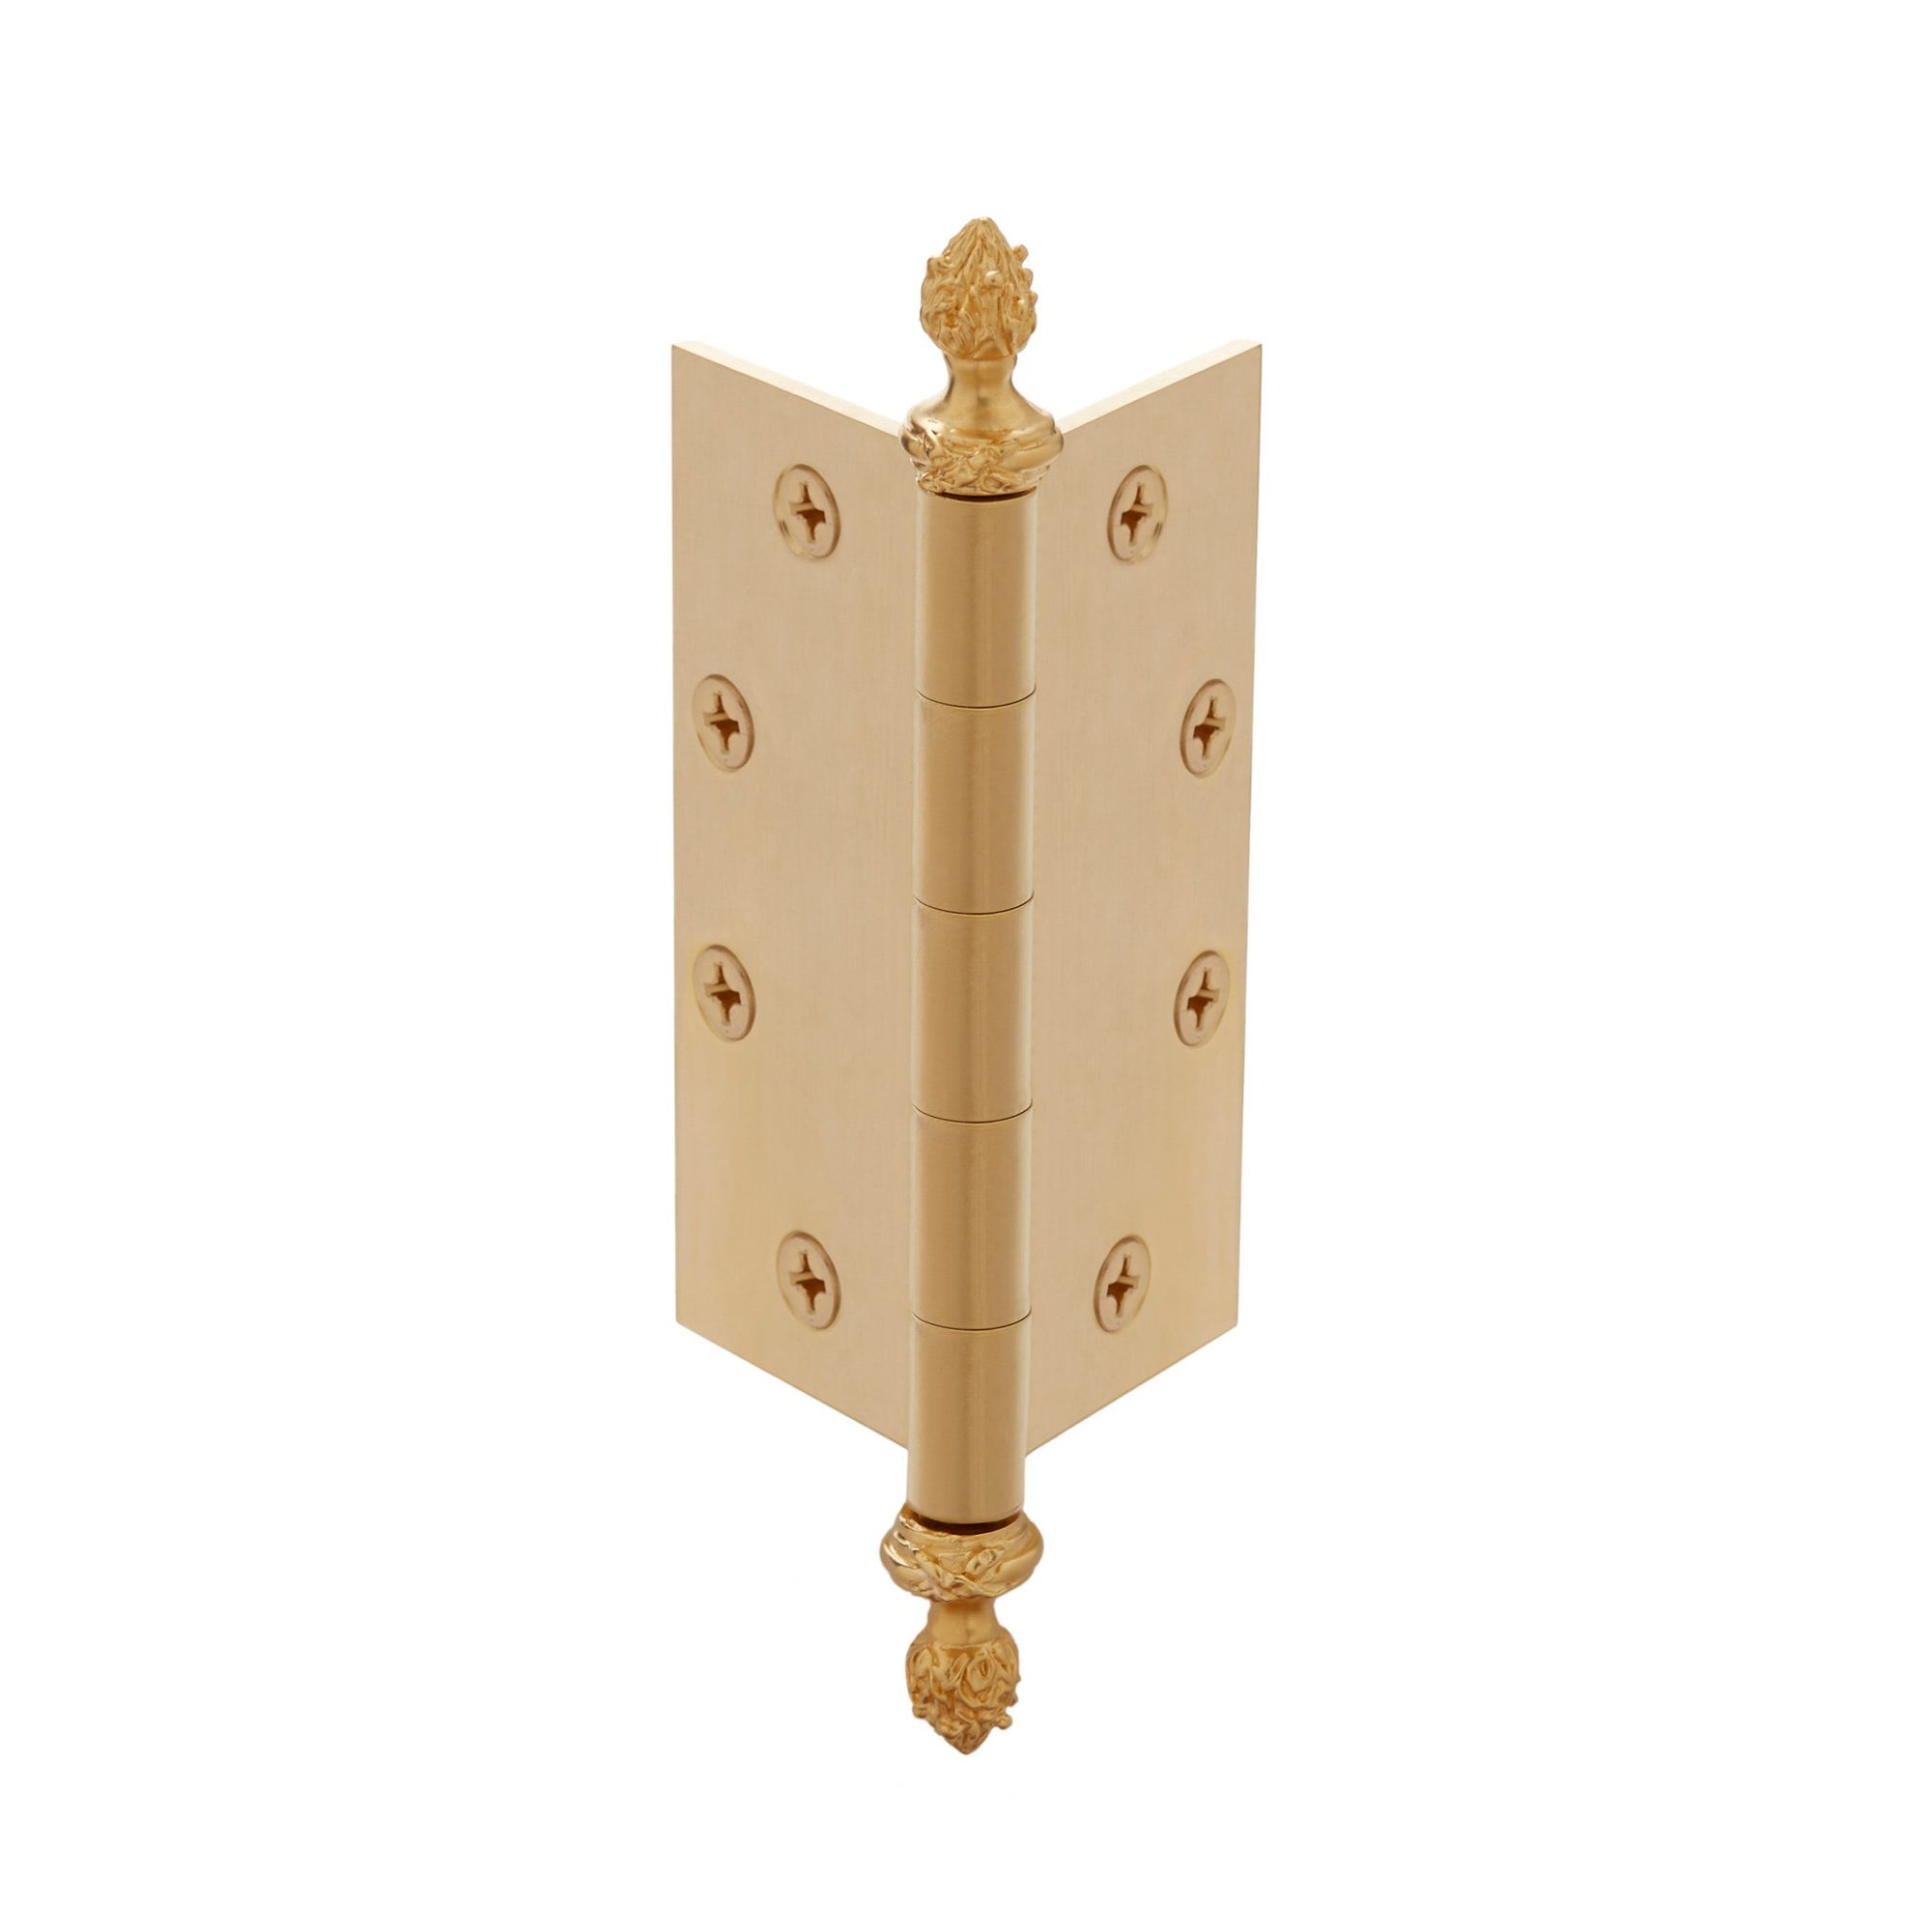 1037-HFIN-GP Sherle Wagner International Ribbon & Reed Finial in Gold Plate metal finish